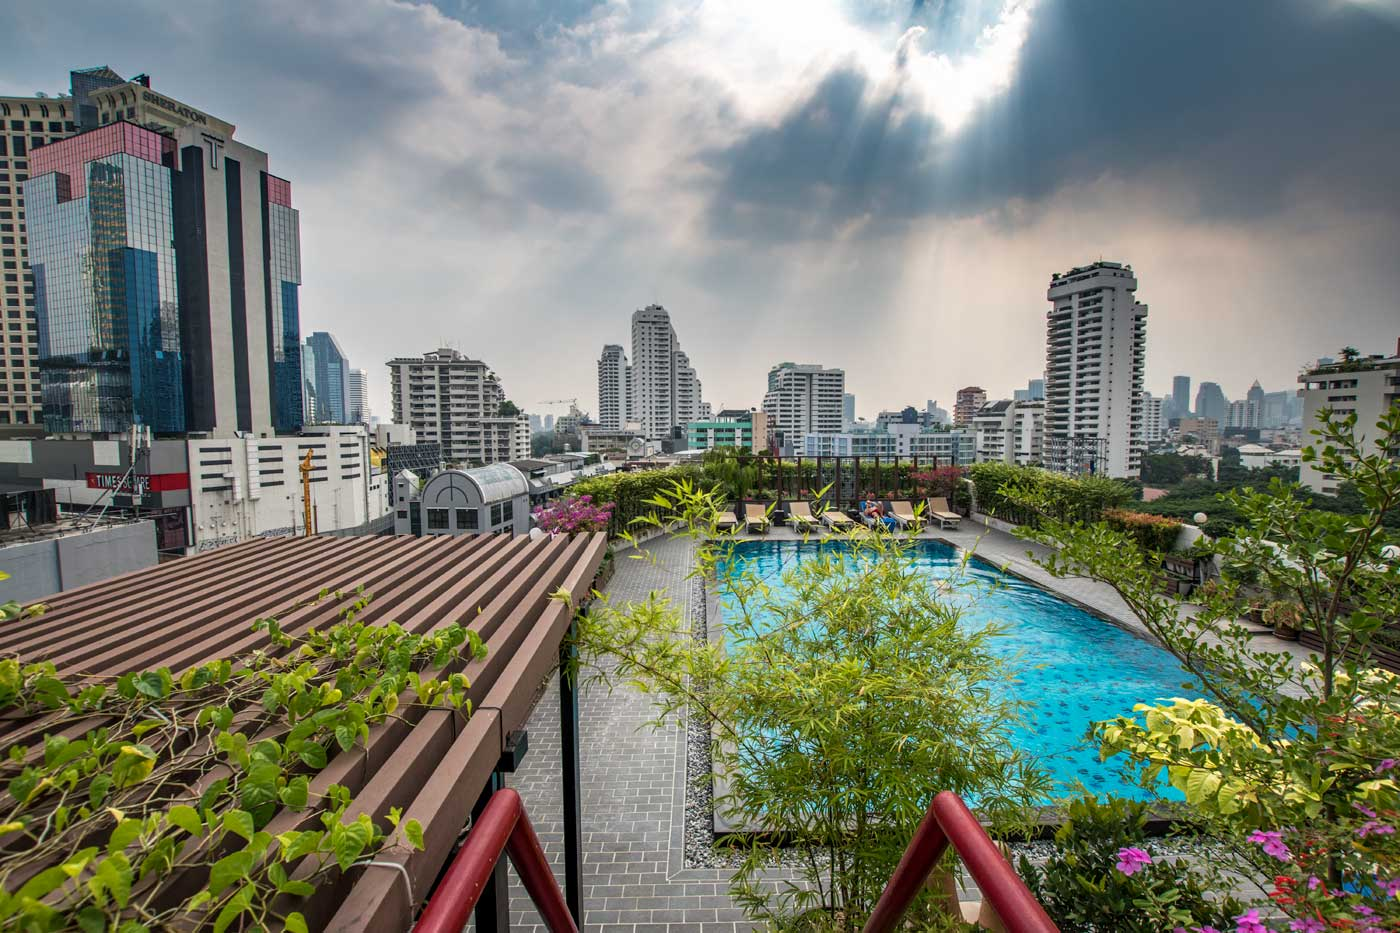 bangkok facts - pool on the roof